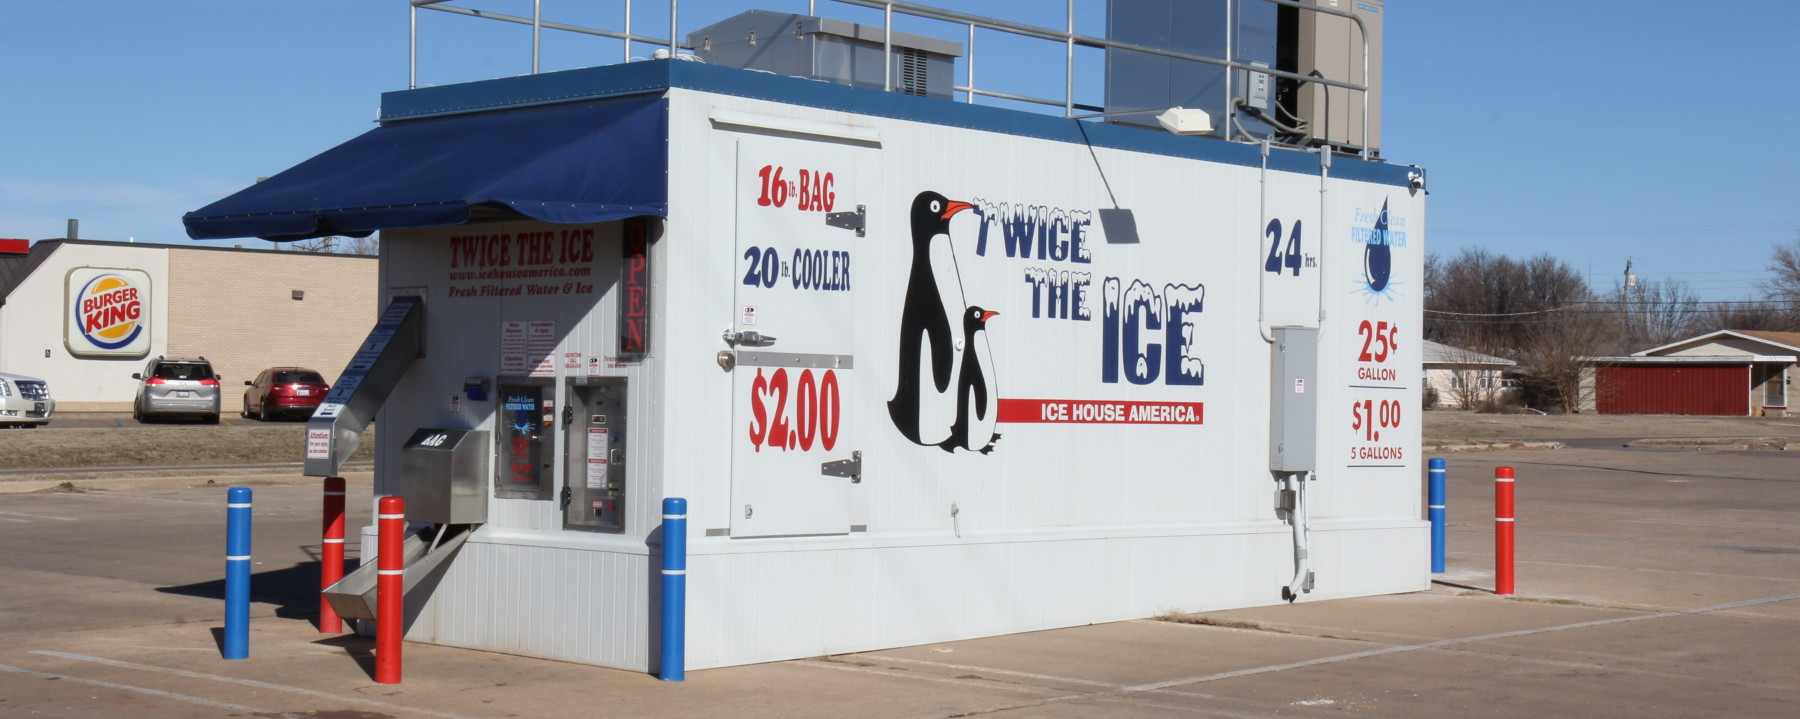 Enid Ice - Open 24 Hours A Day